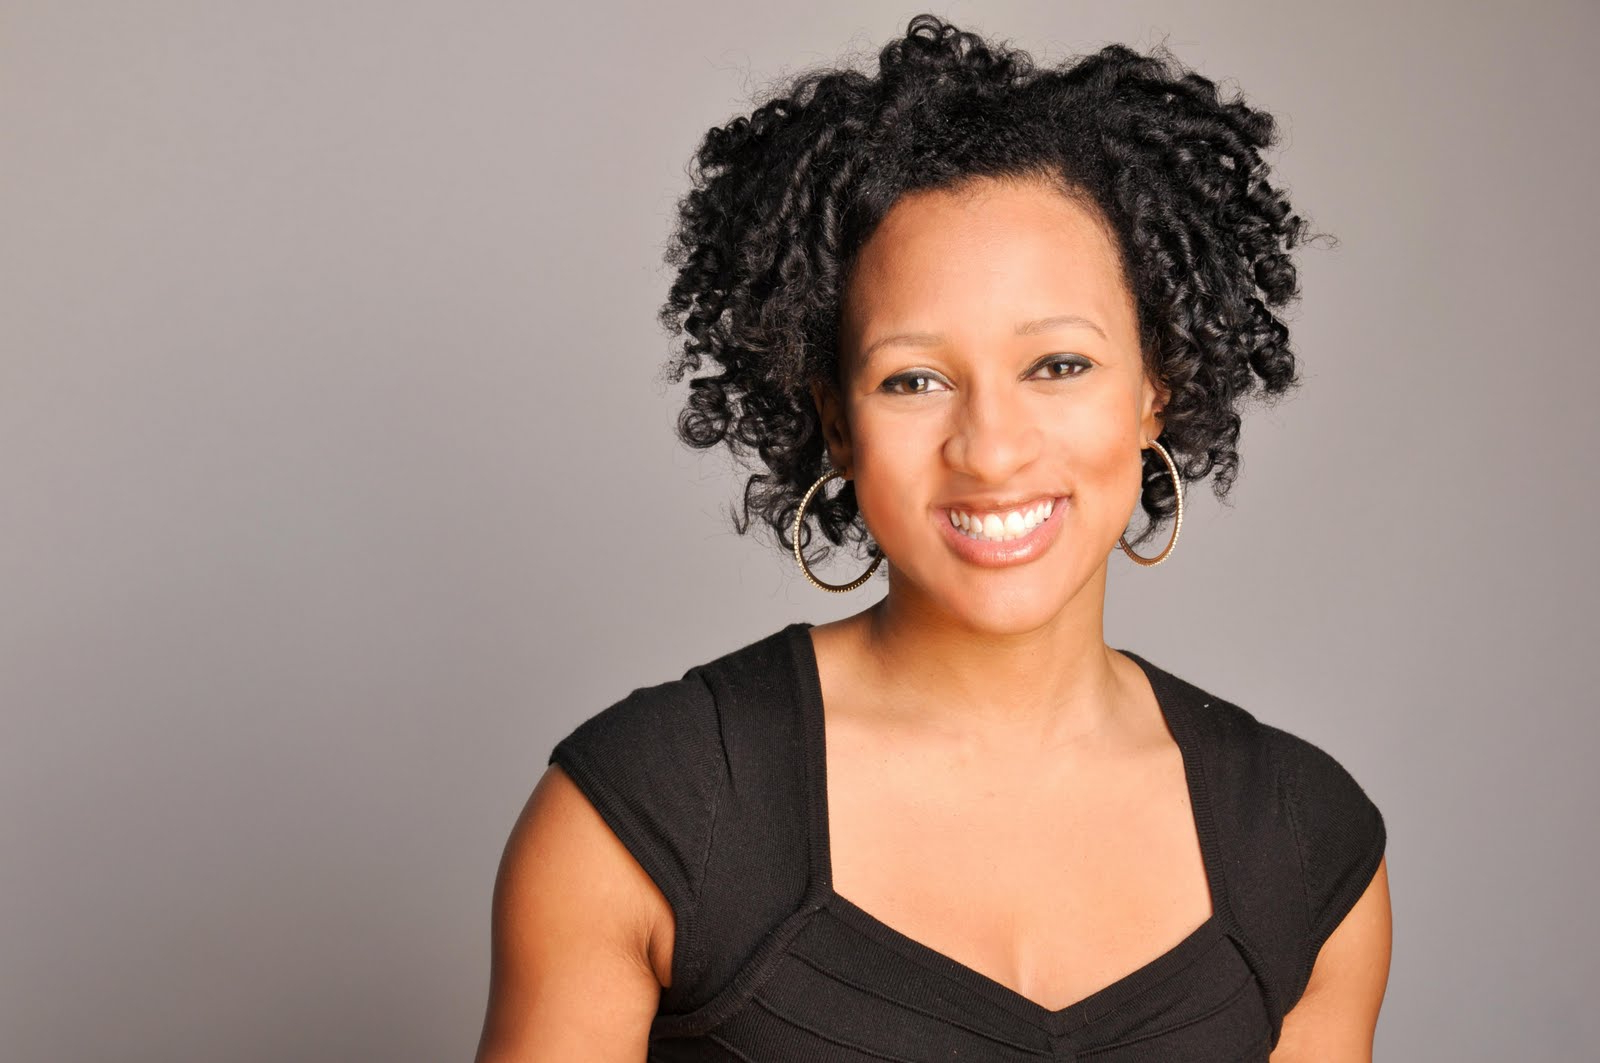 A World Of Hairstyles For Black Women With Short Hair – Mhasearch Intended For Curly Short Hairstyles Black Women (View 17 of 25)